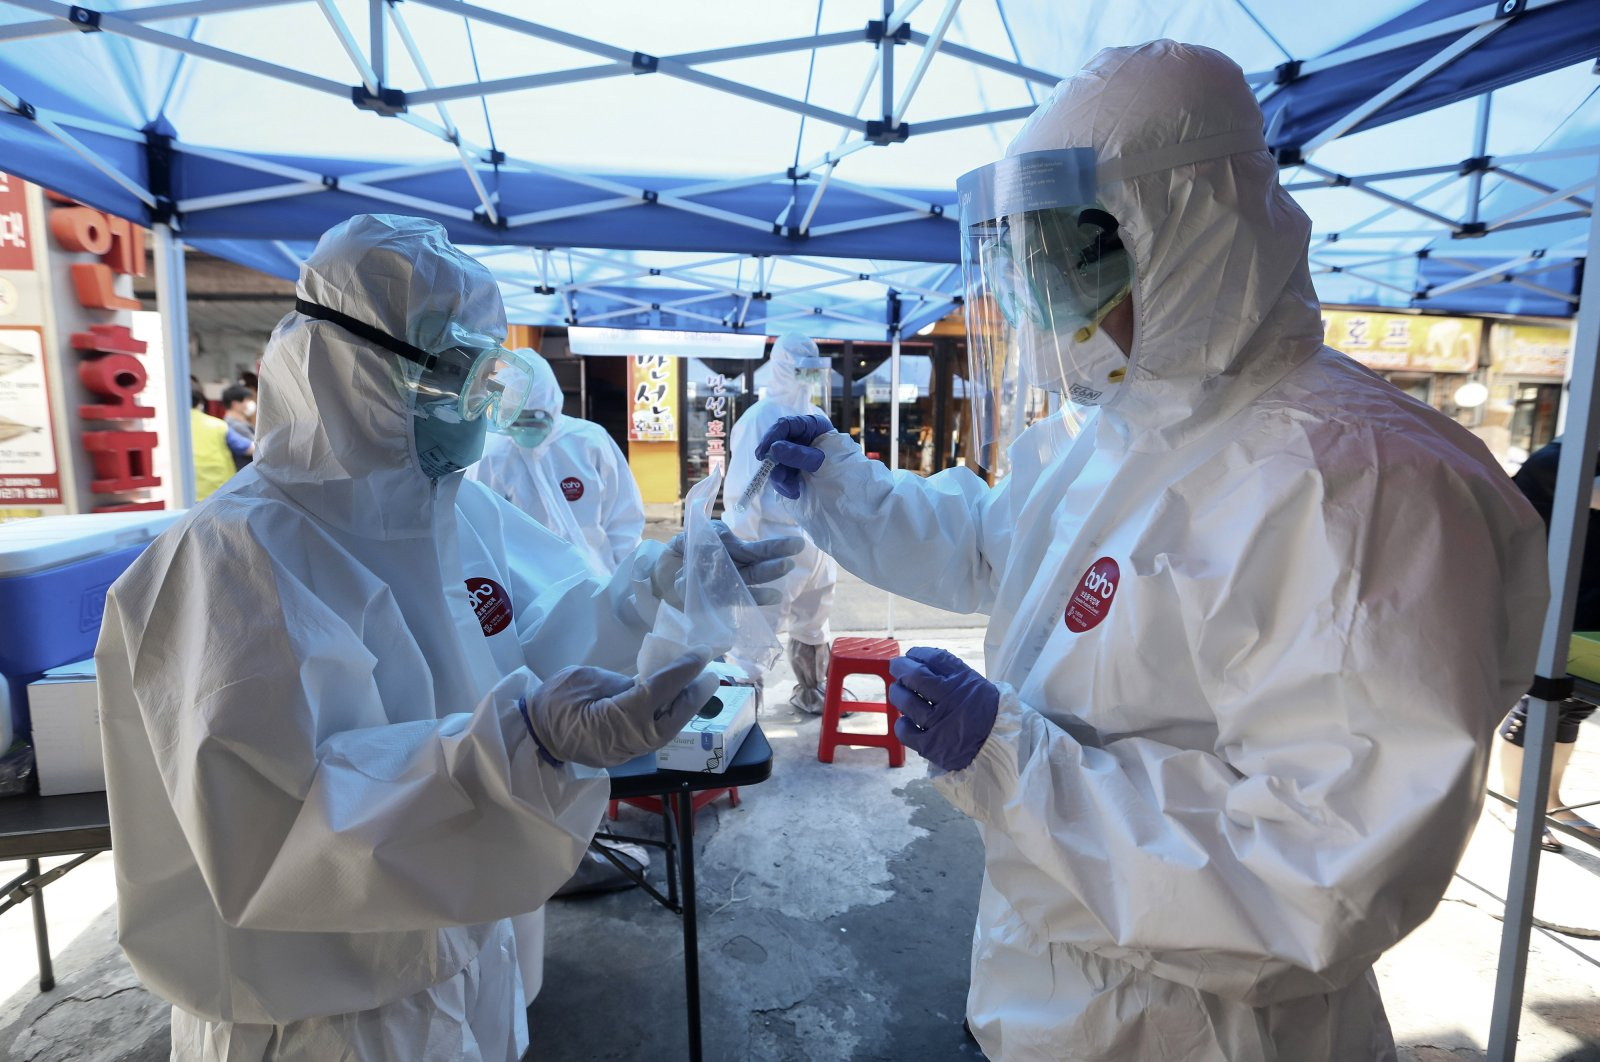 A health official wearing protective gear puts a sample from a person into a plastic bag during COVID-19 testing at a makeshift clinic in Seoul, South Korea, June 5, 2020. (AP Photo)